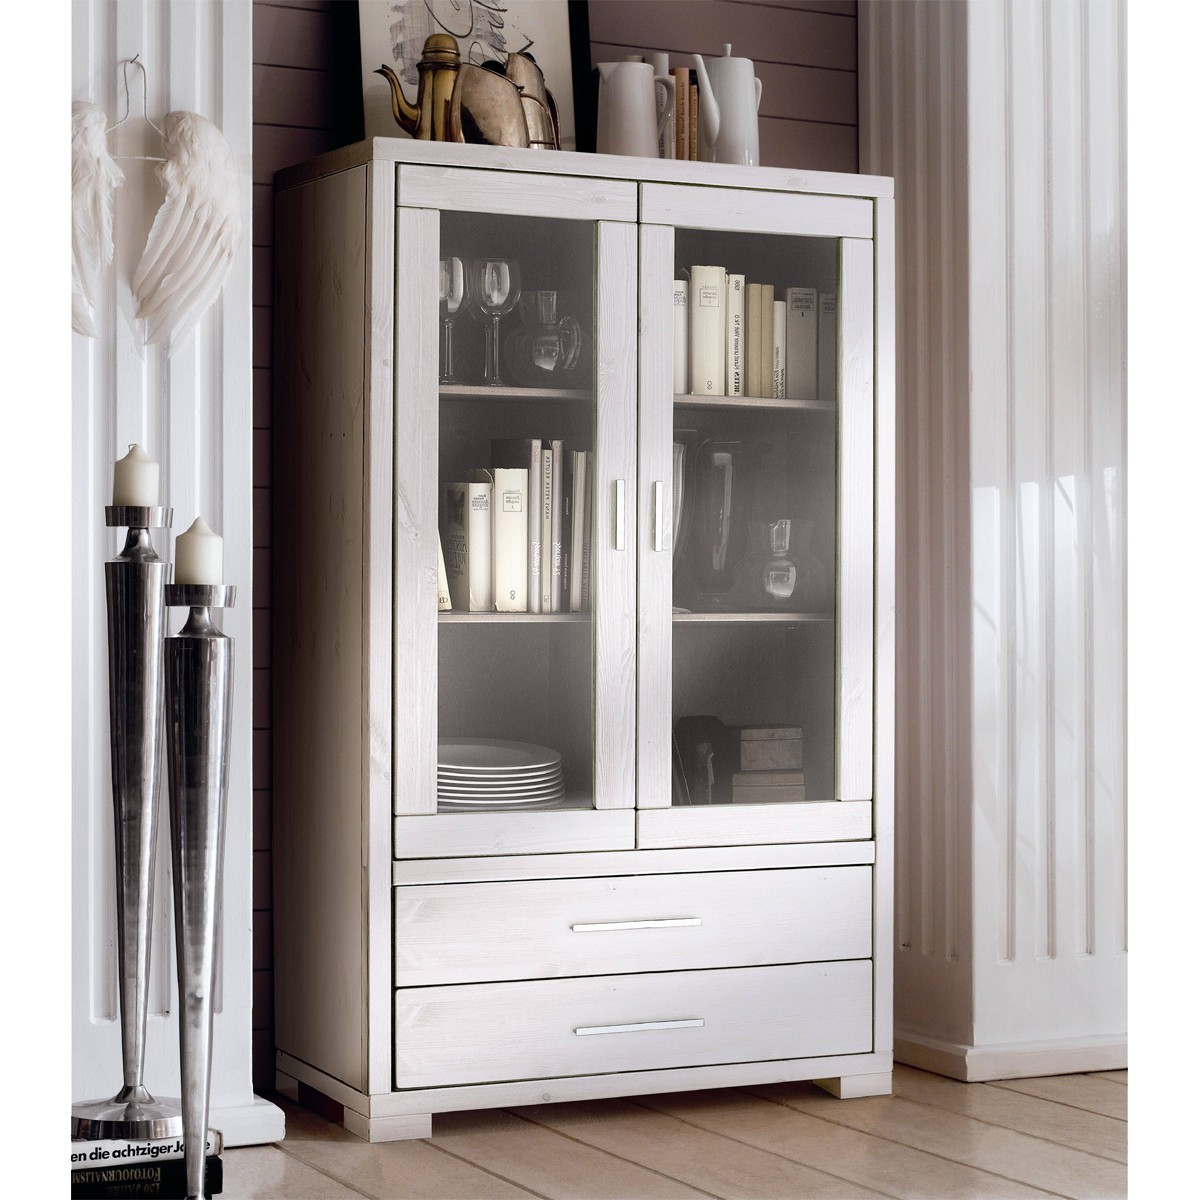 highboard vitrine weiss raum und m beldesign inspiration. Black Bedroom Furniture Sets. Home Design Ideas